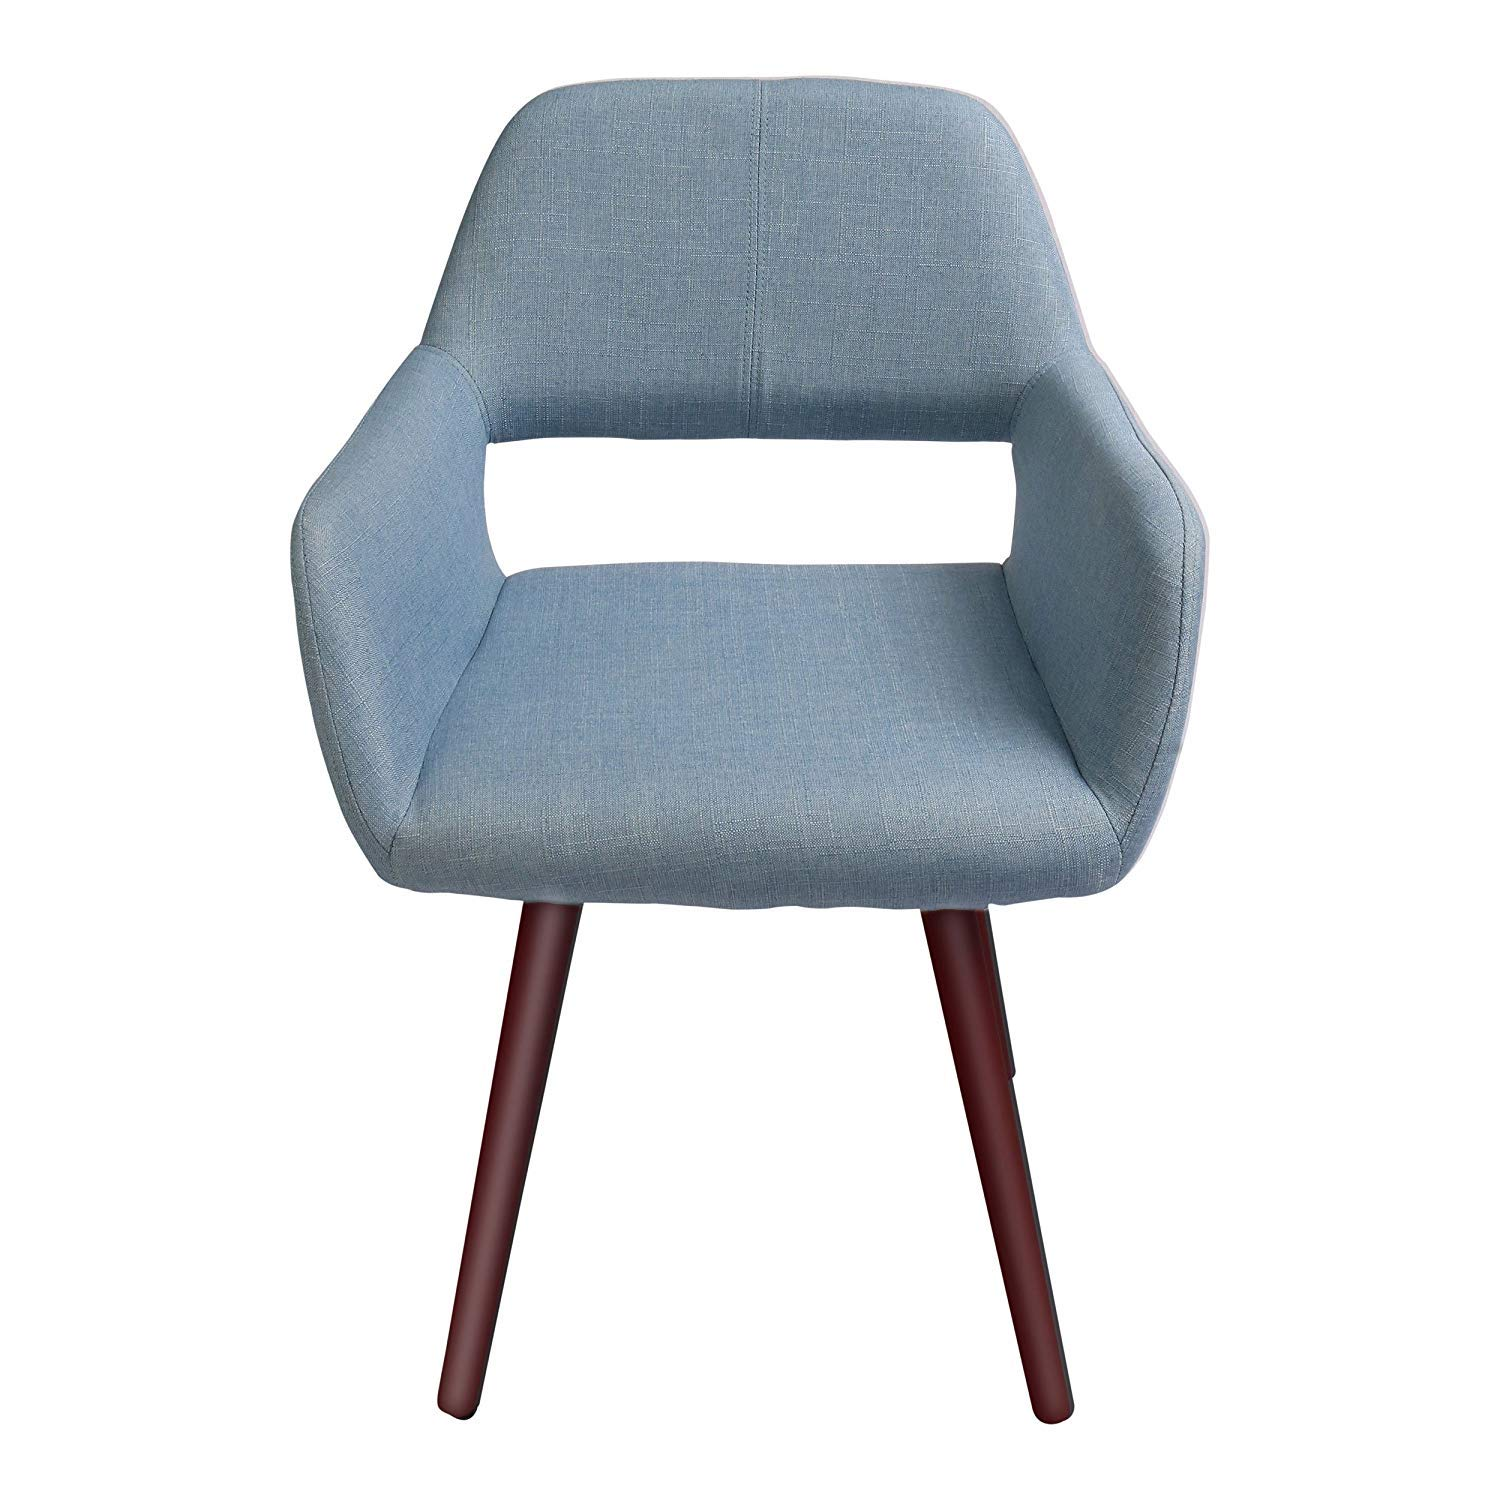 Fremont Accent Arm Chair Modern Upholstered Fabric Light Blue Dining Armchair with Wood Legs for Living Room, Dinning Room